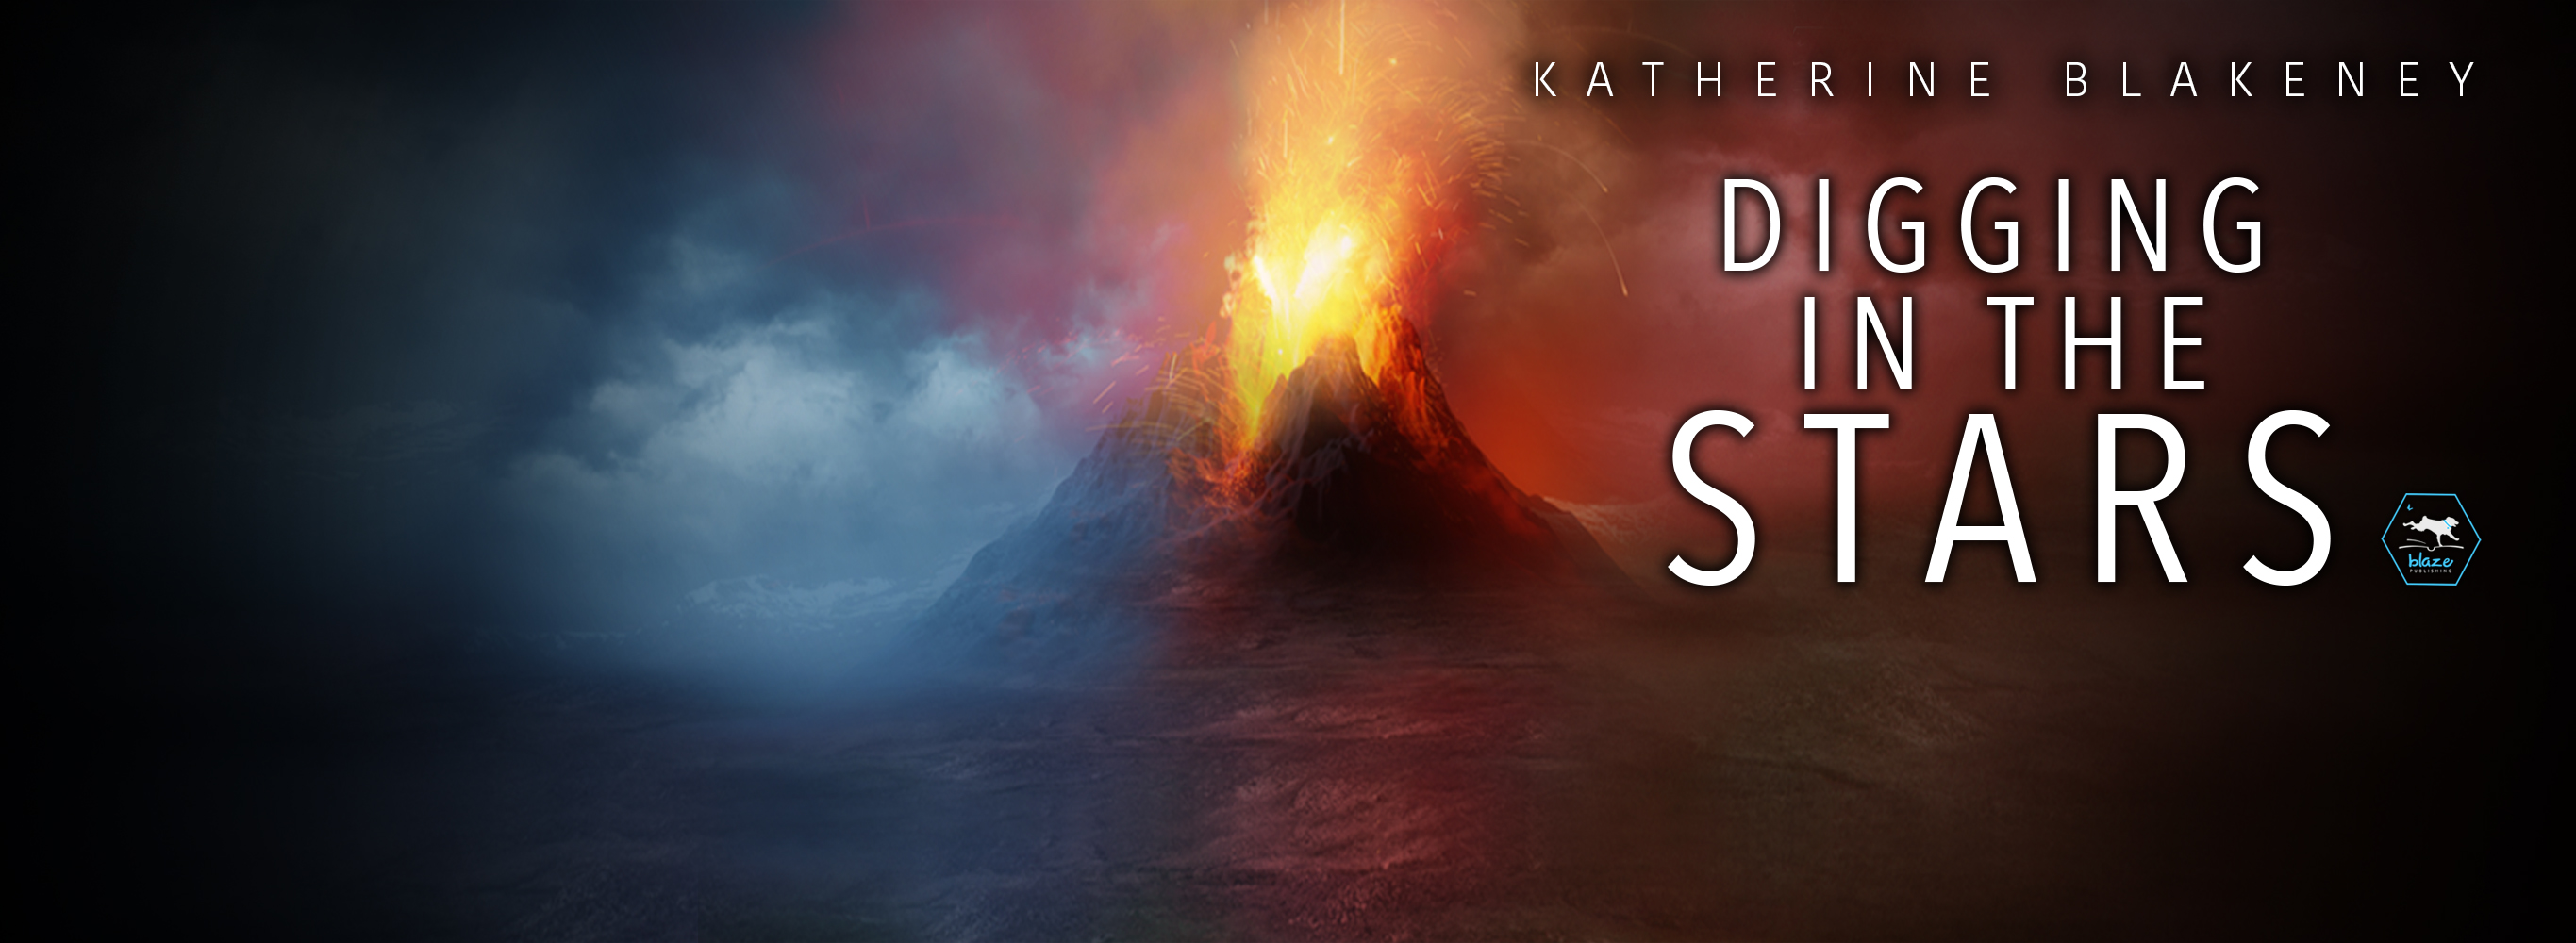 digging-in-the-stars-katherine-blakeney-teaser-facebook-header